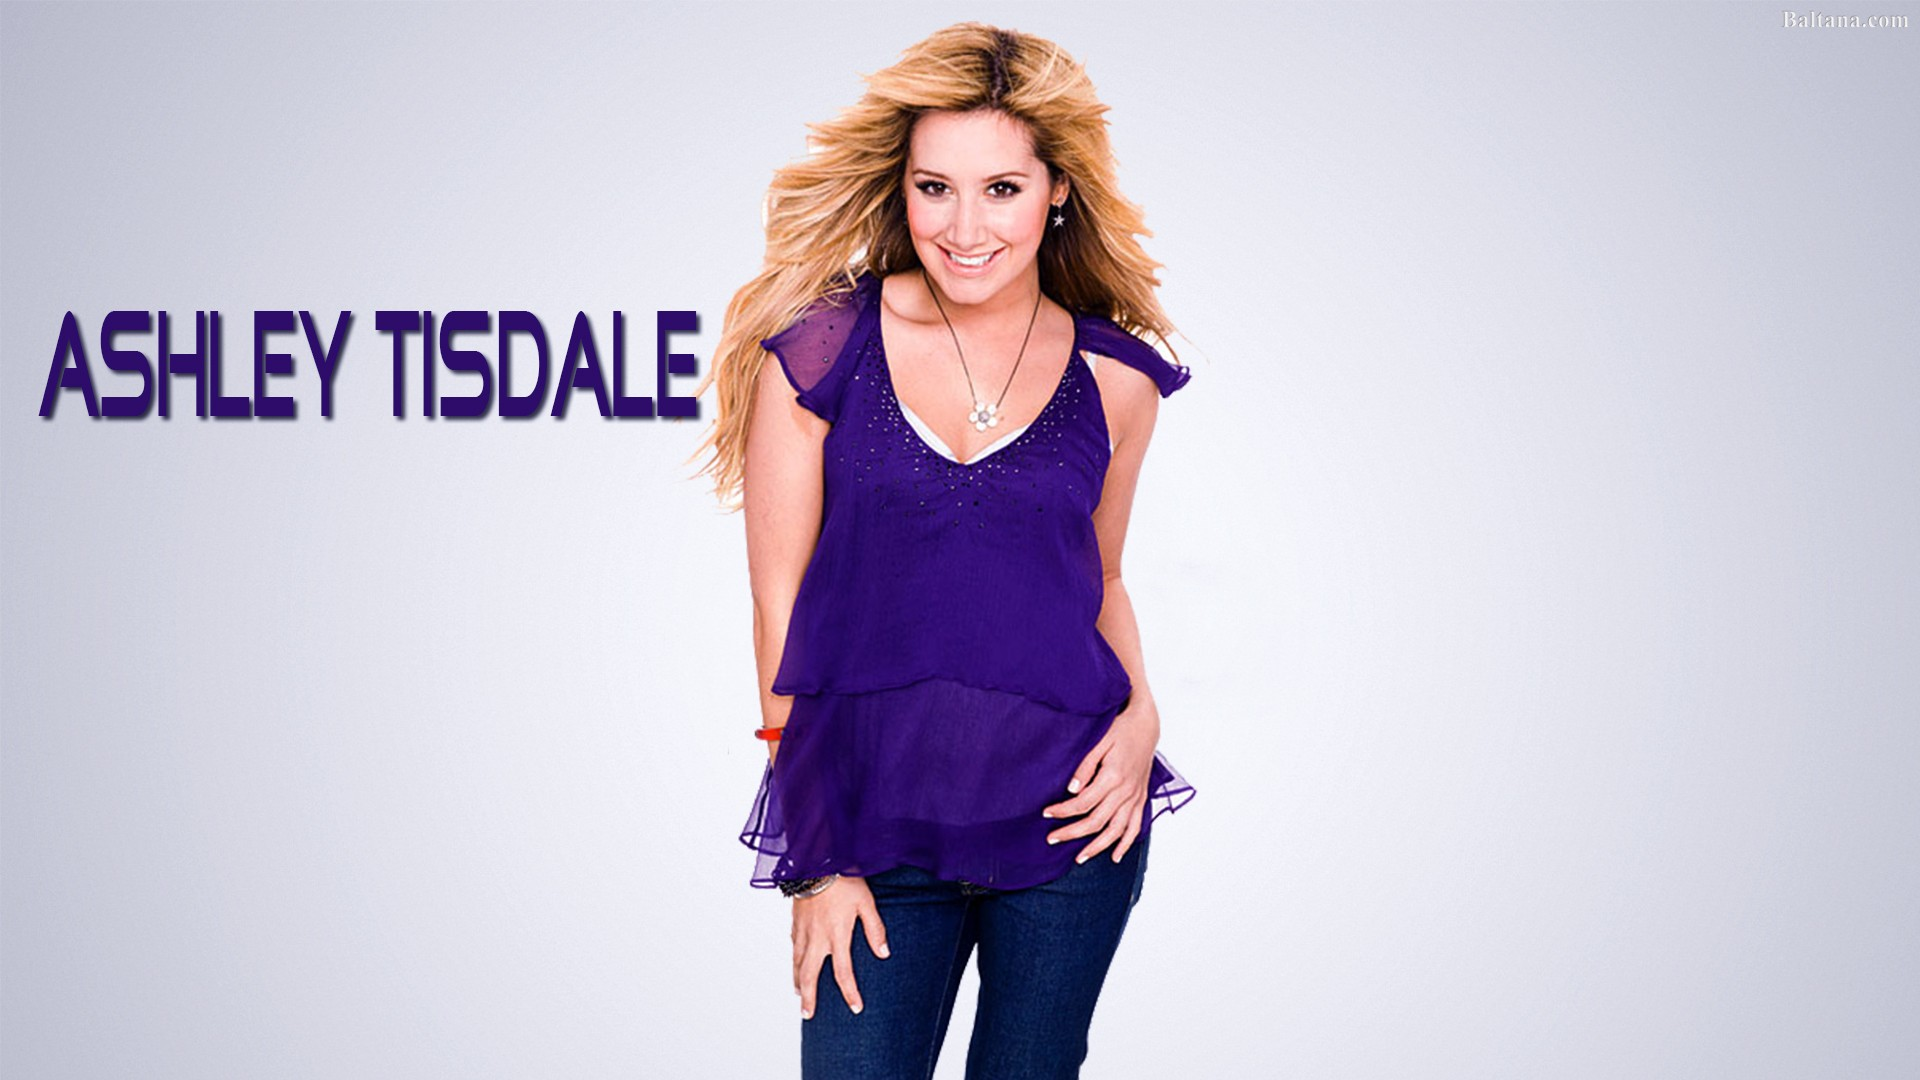 1920x1080 - Ashley Tisdale Wallpapers 23